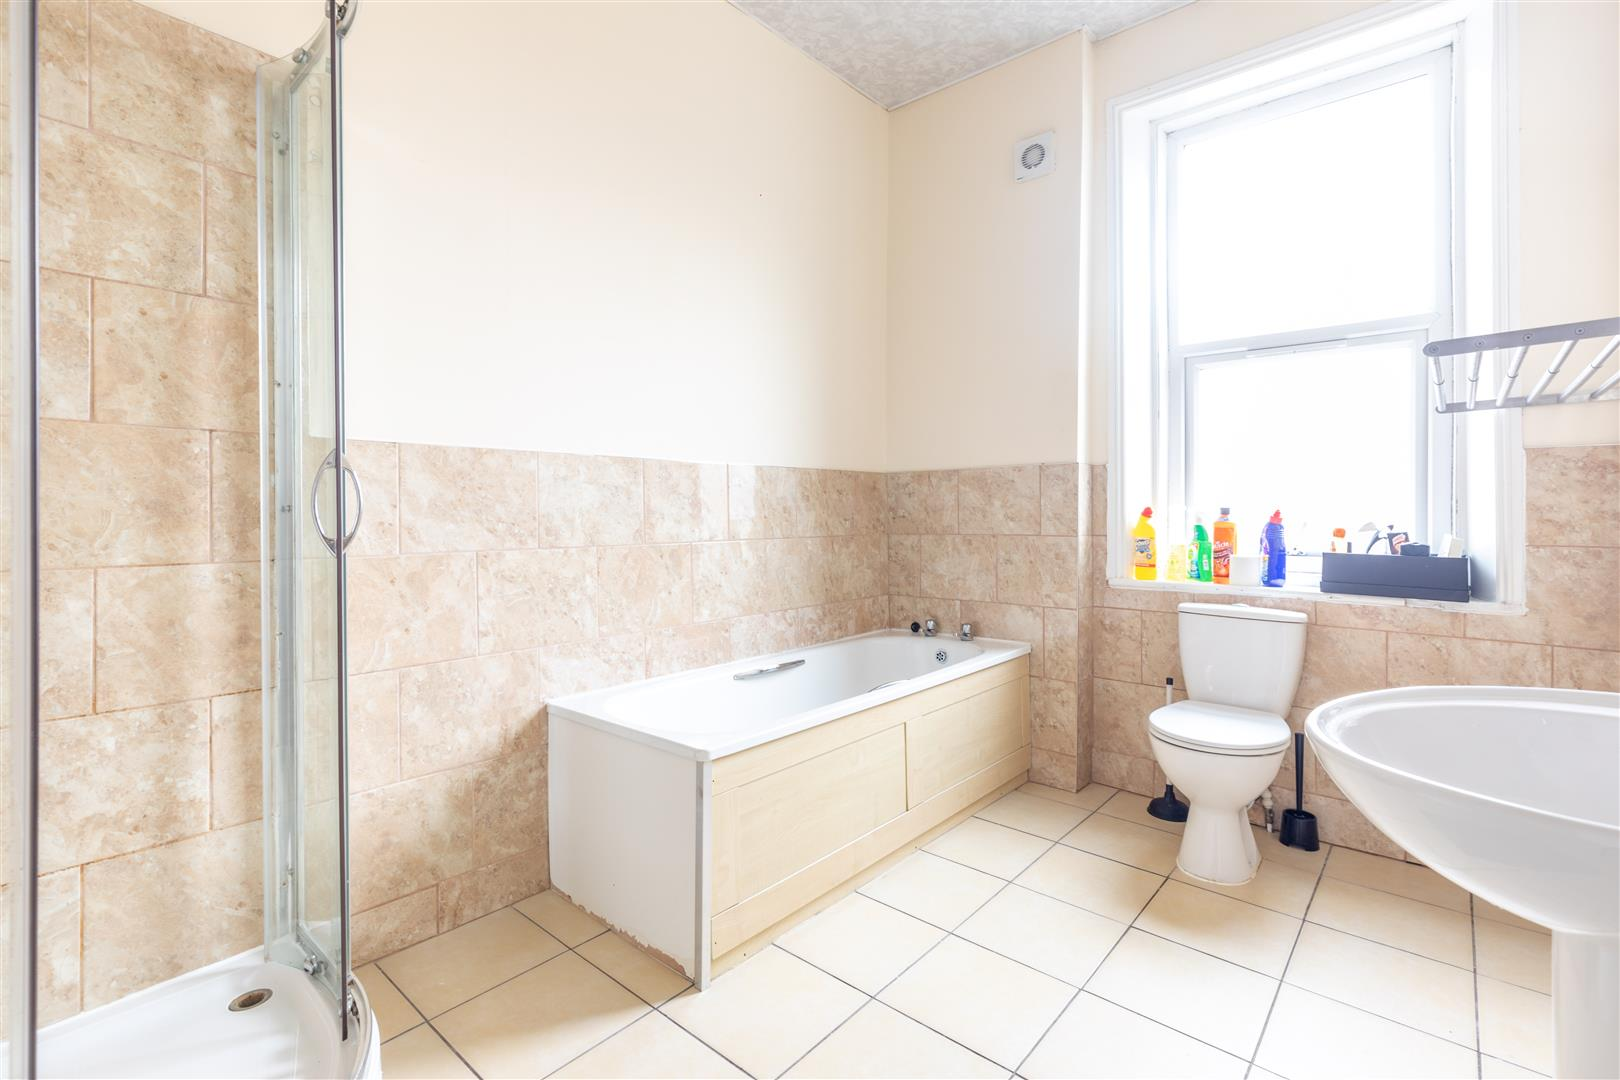 5 bed terraced house to rent in Newcastle Upon Tyne, NE6 5BT  - Property Image 10